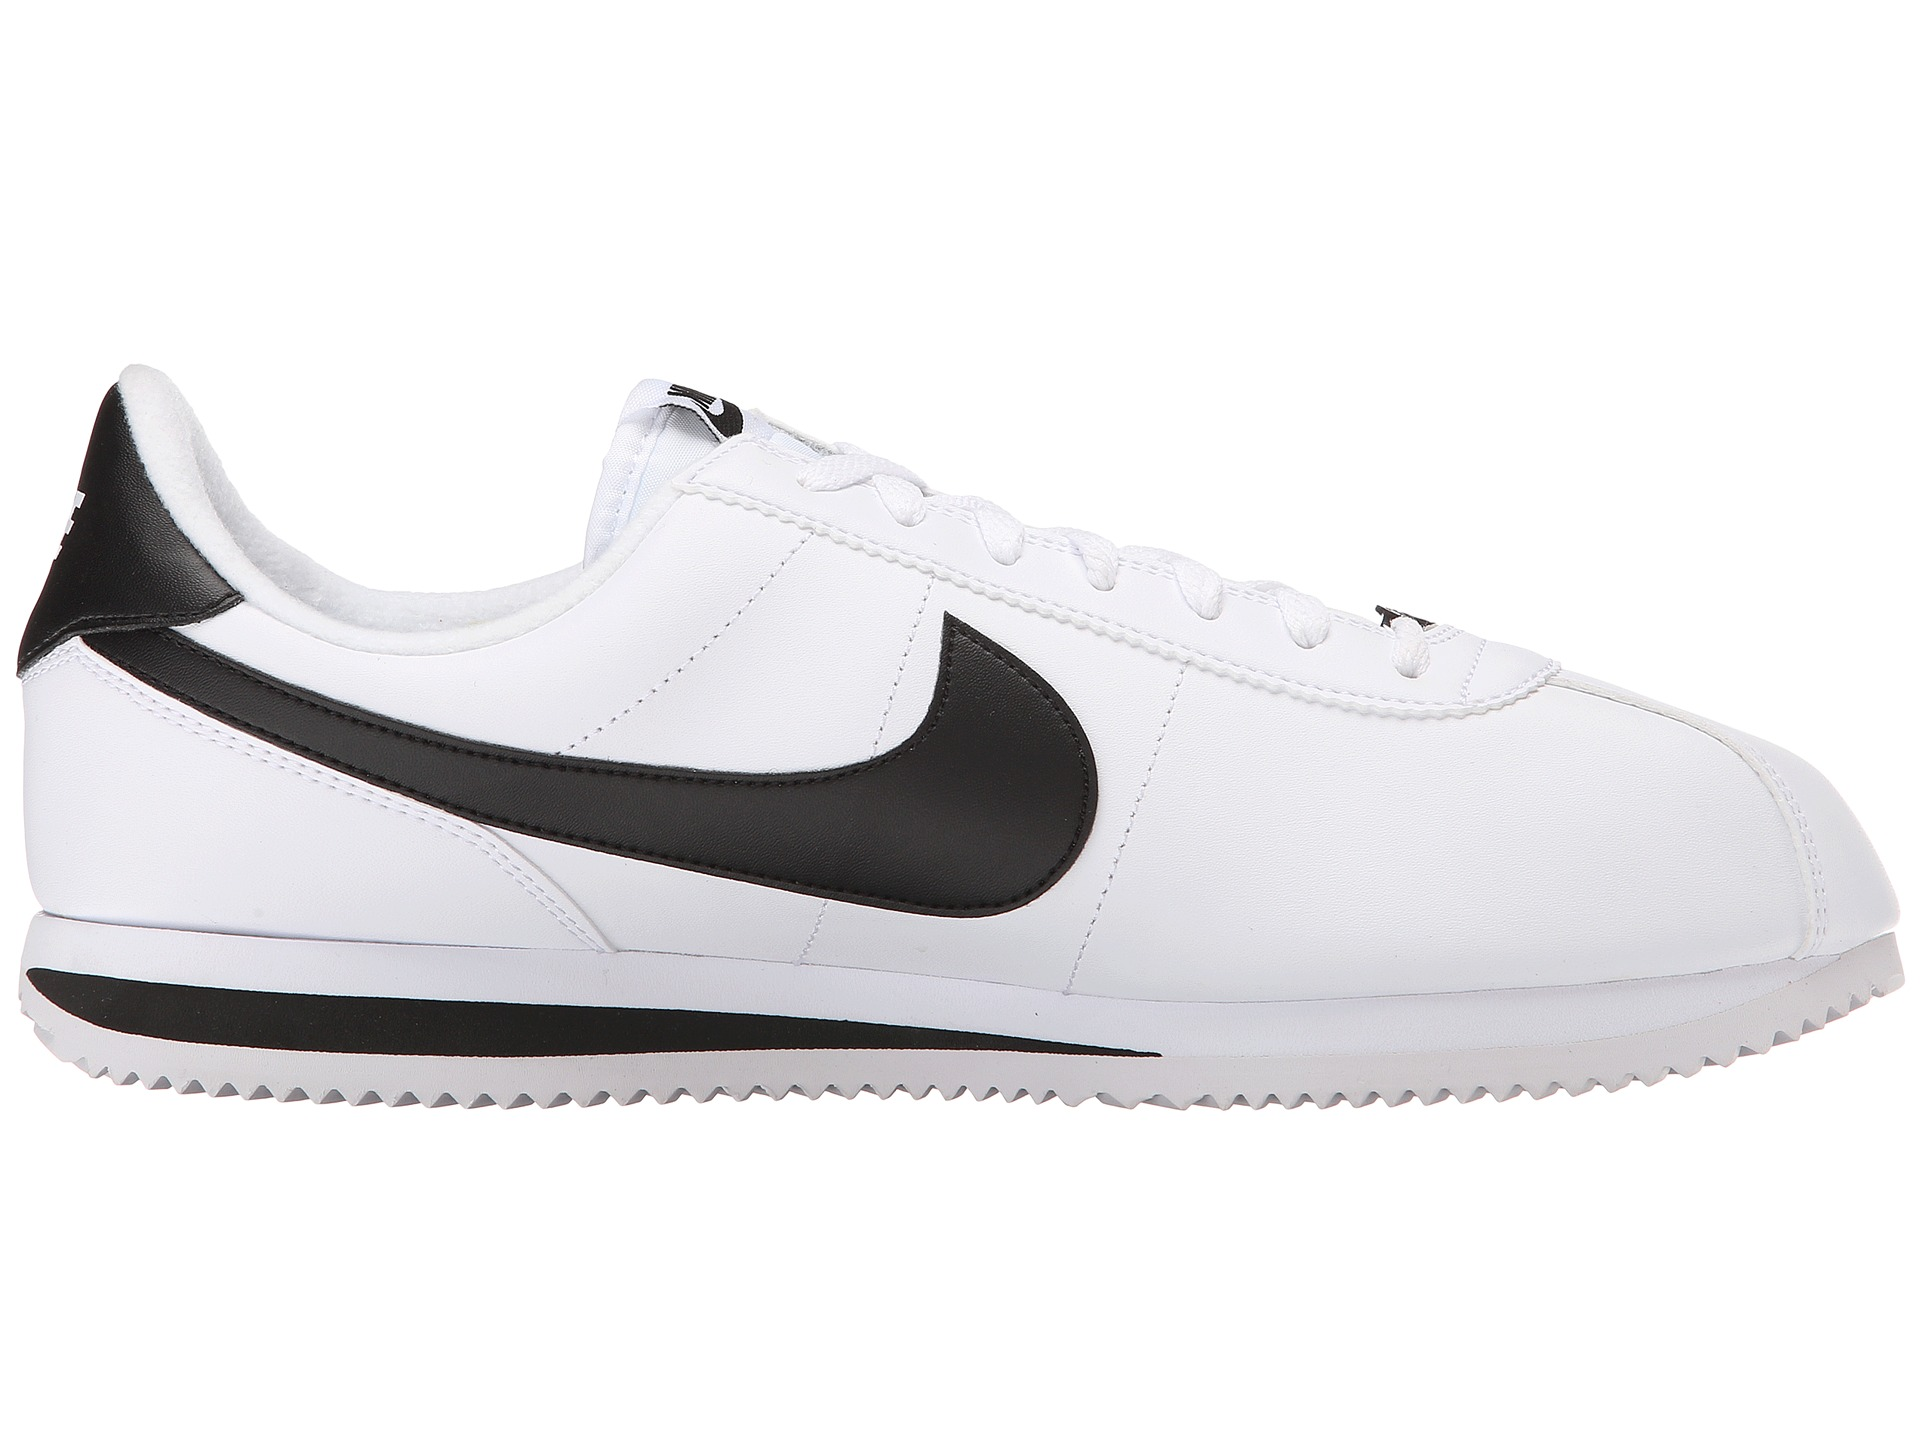 1414c4dbf08e2 leather nike cortez,shoes by lebron james > OFF33% Free shipping!